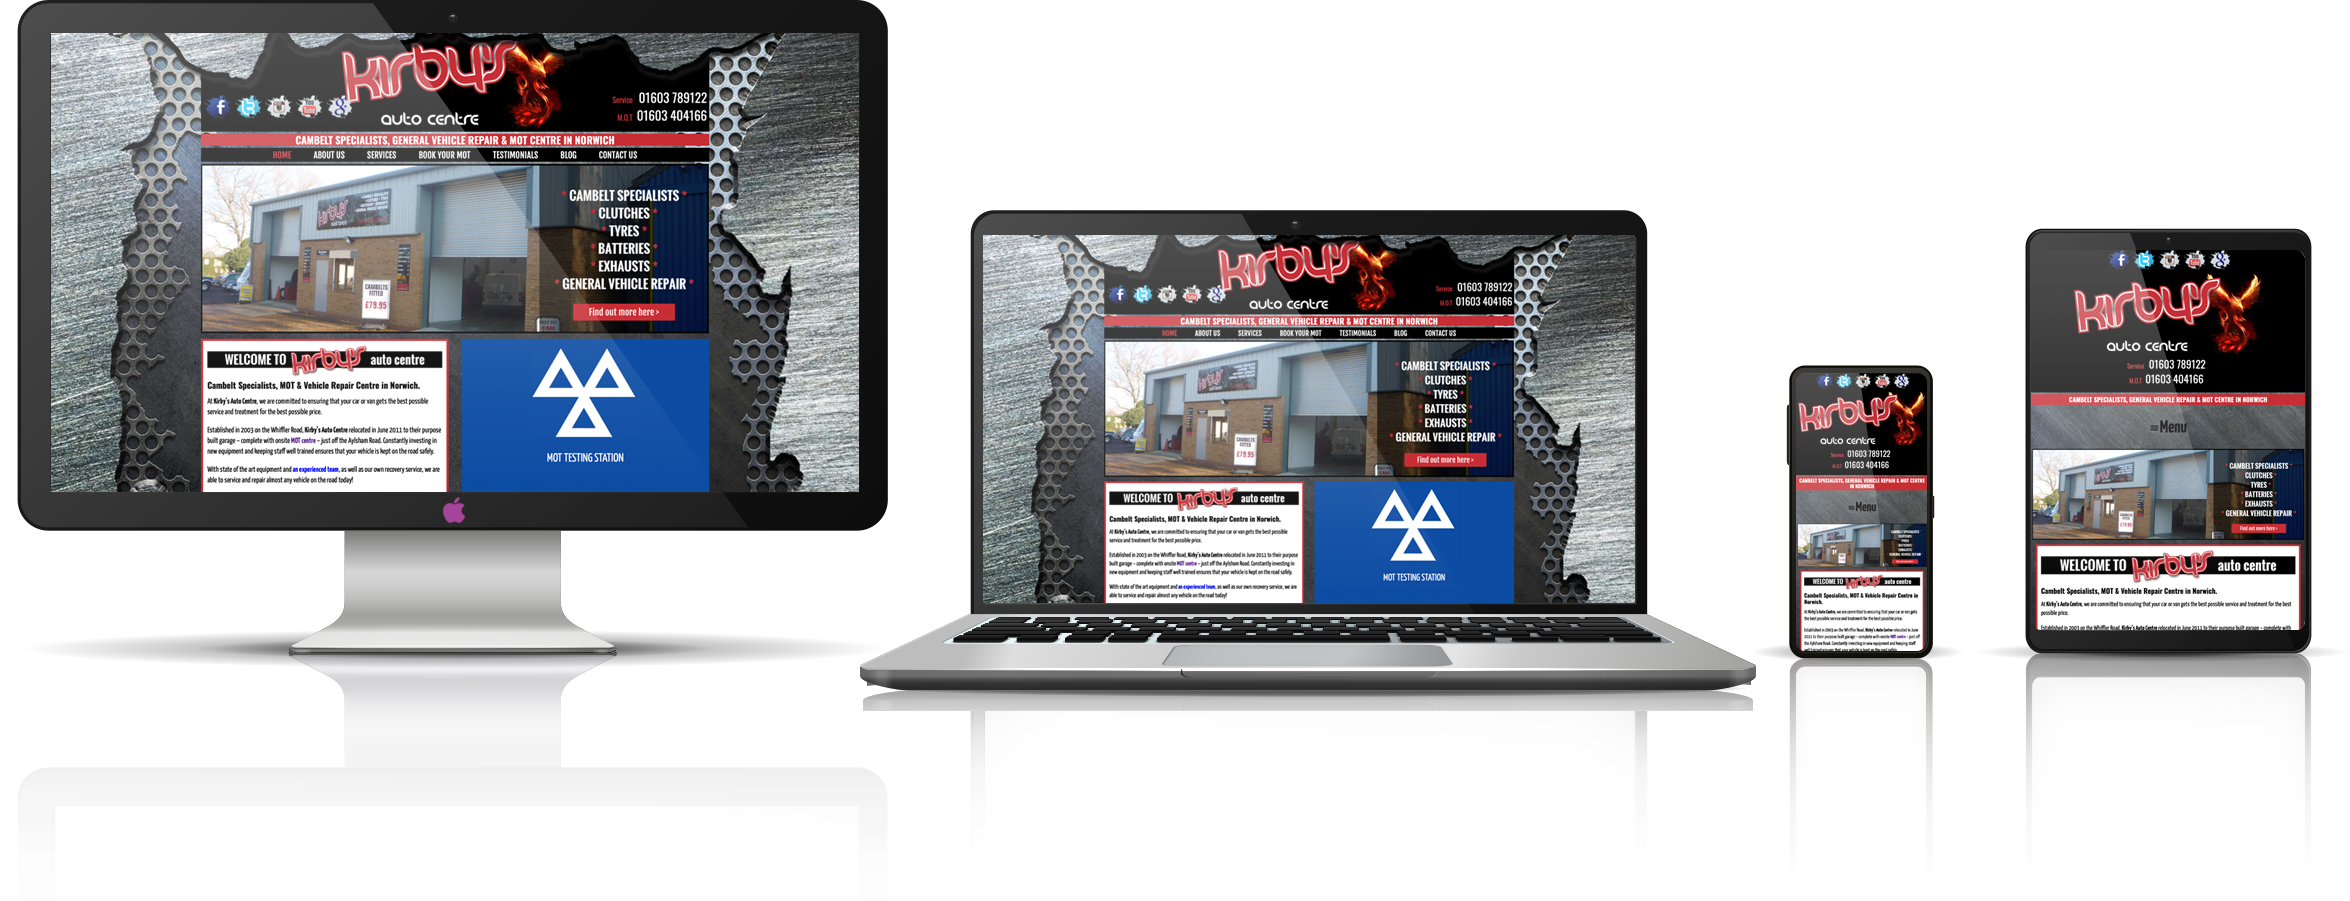 The Kirby's Auto Centre fully responsive mock-up images showing desktop, laptop, tablet, and mobile phone devices.